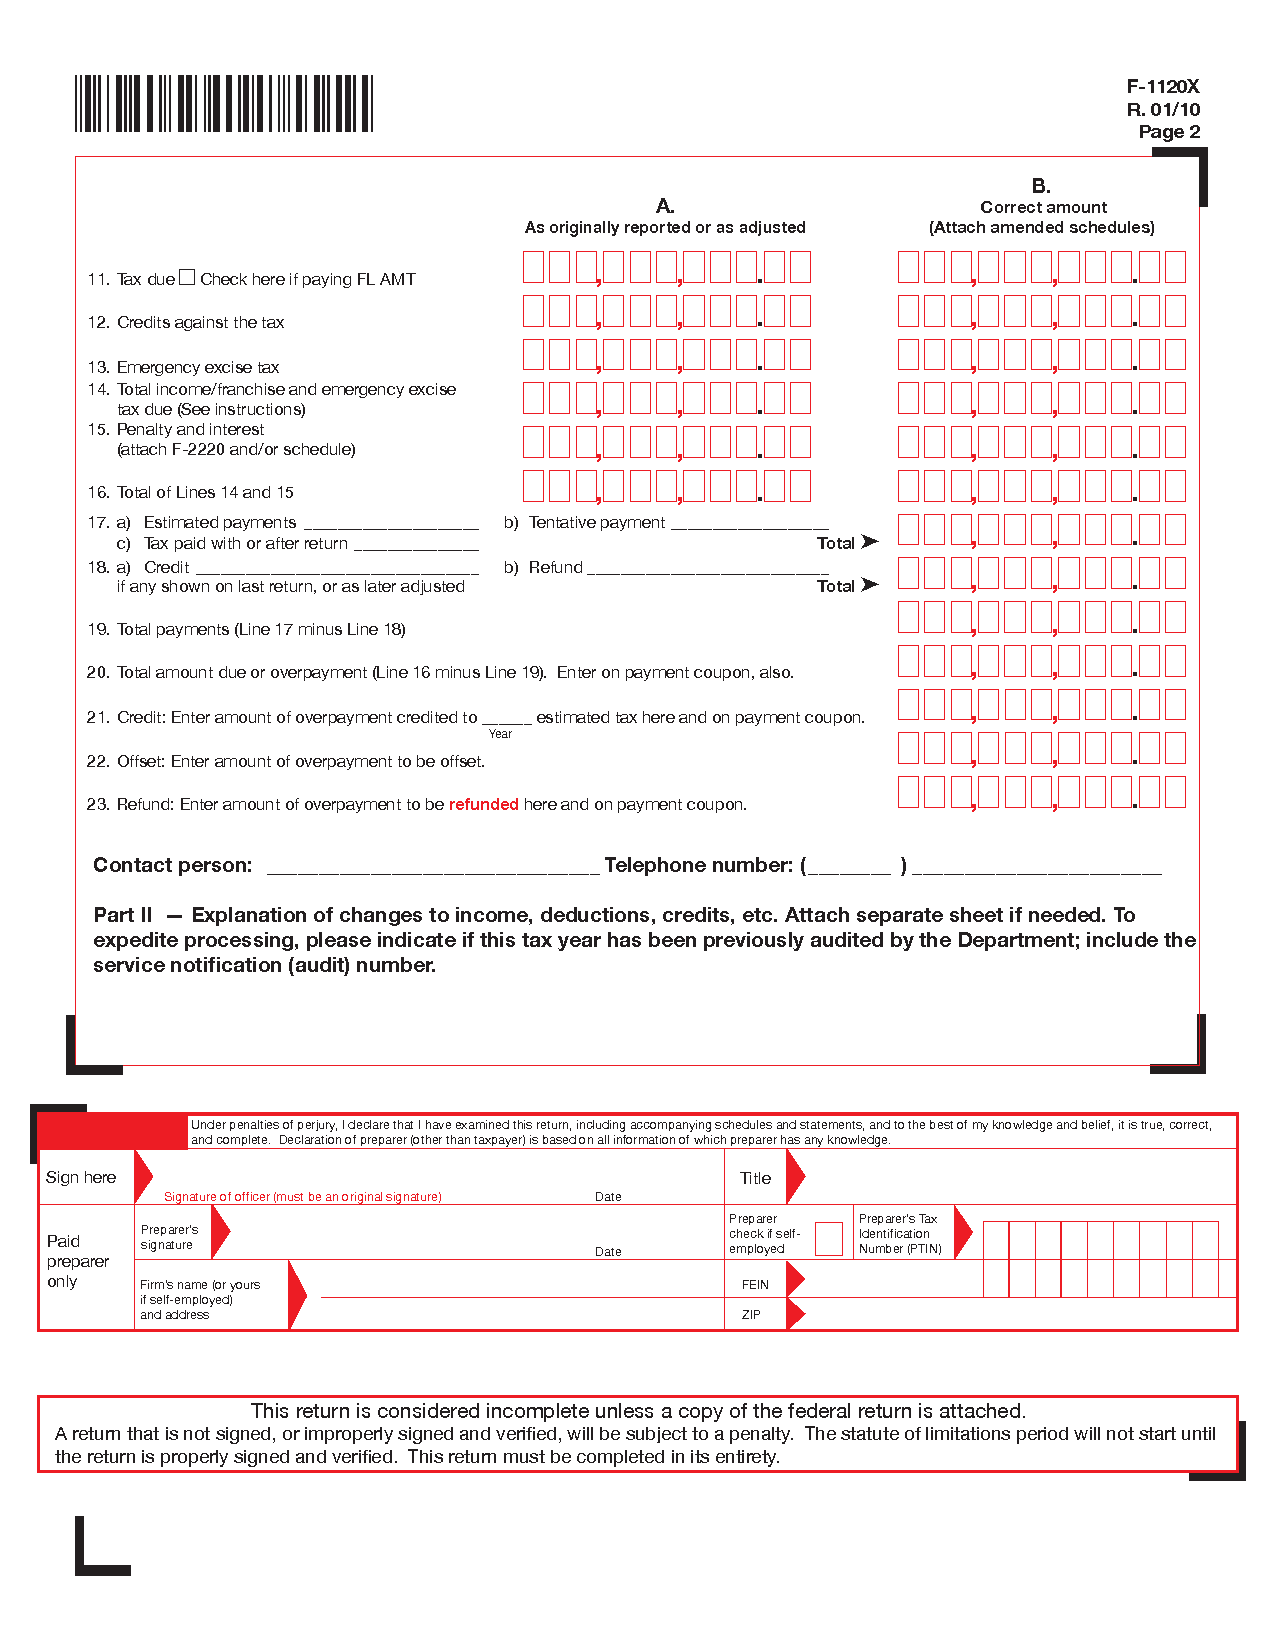 Form F 1120x Amended Florida Corporate Incomefranchise And